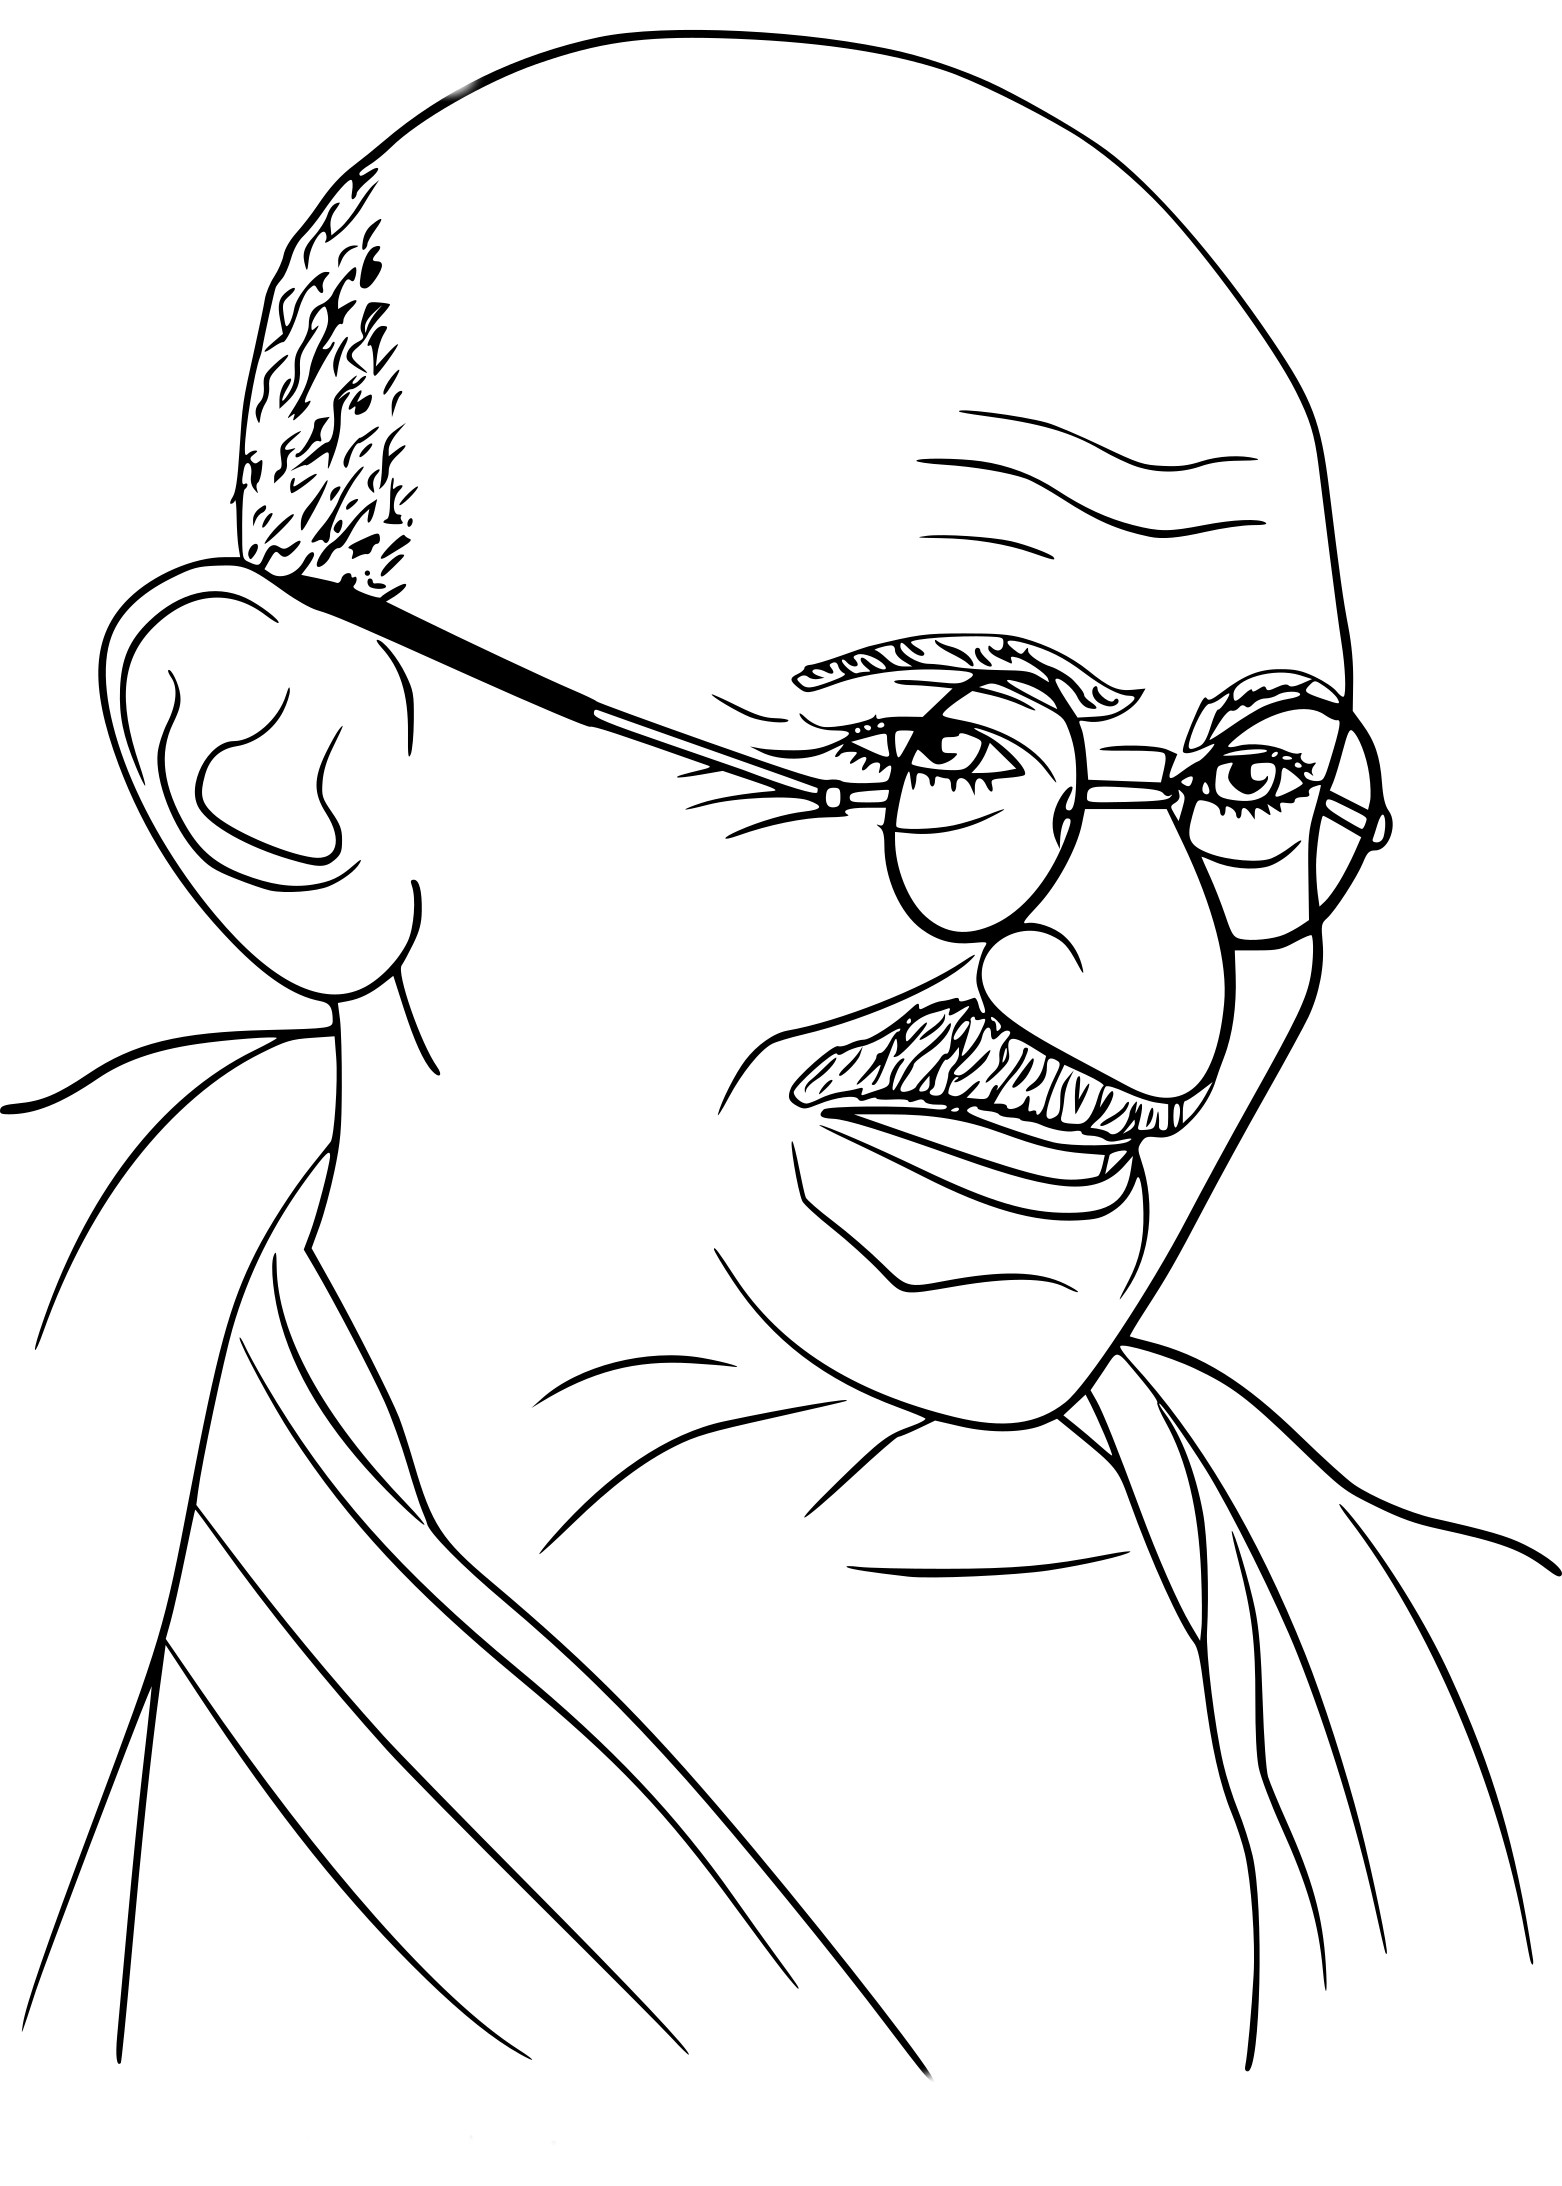 gandhiji standing coloring pages - photo#21